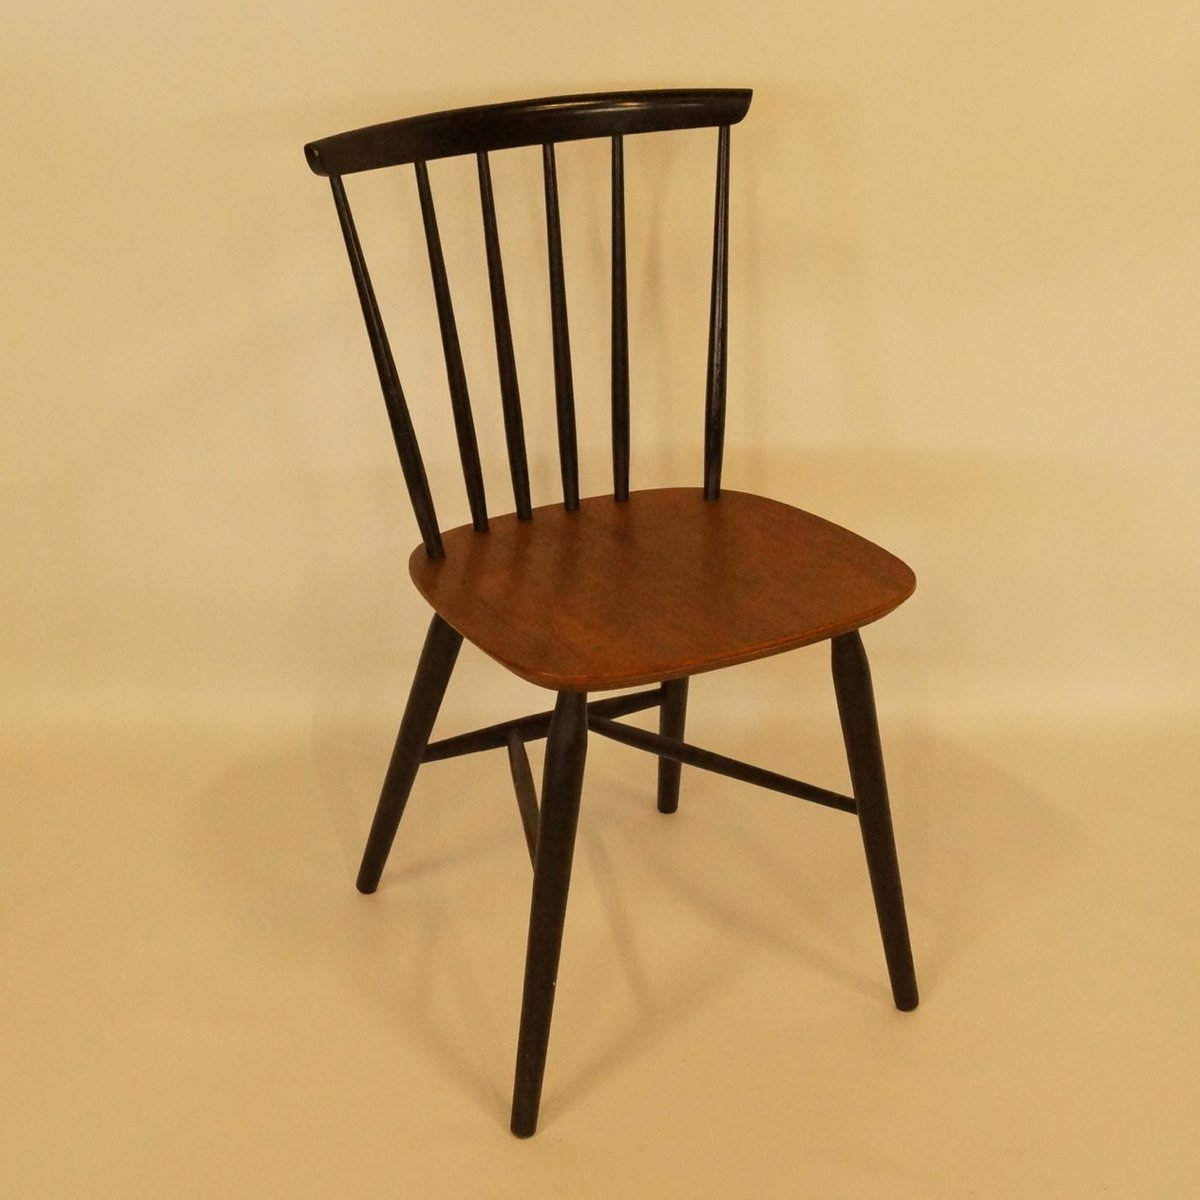 Vintage Teak Dining Chair From Farstrup 1960s For Sale At Pamono